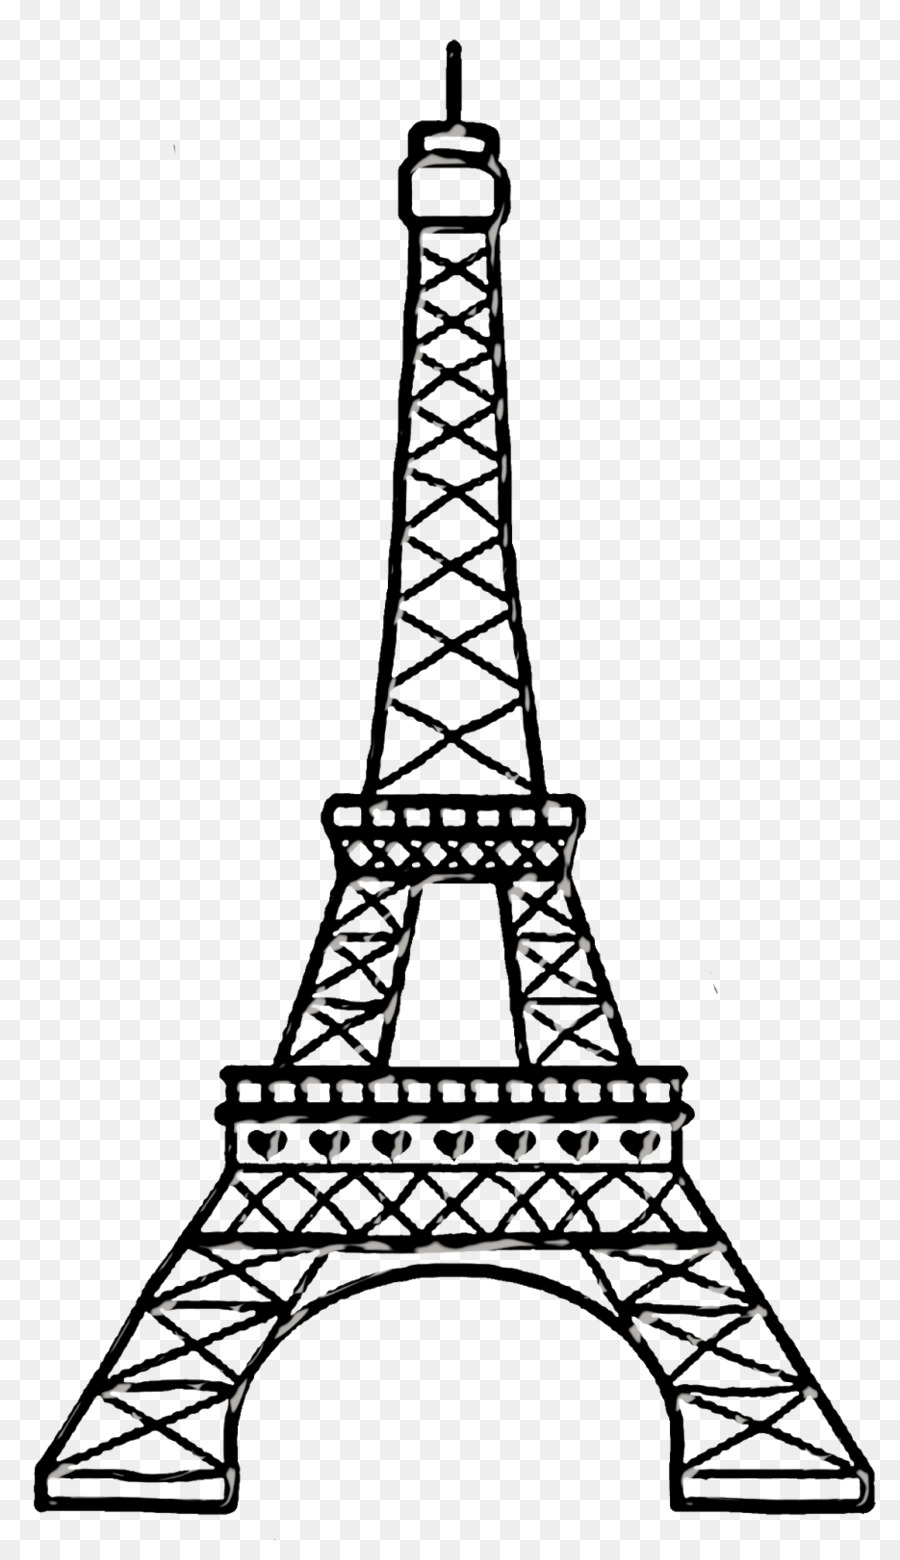 Torre eiffel dibujo clipart vector transparent Eiffel Tower Drawing clipart - Drawing, Sketch, Line, transparent ... vector transparent